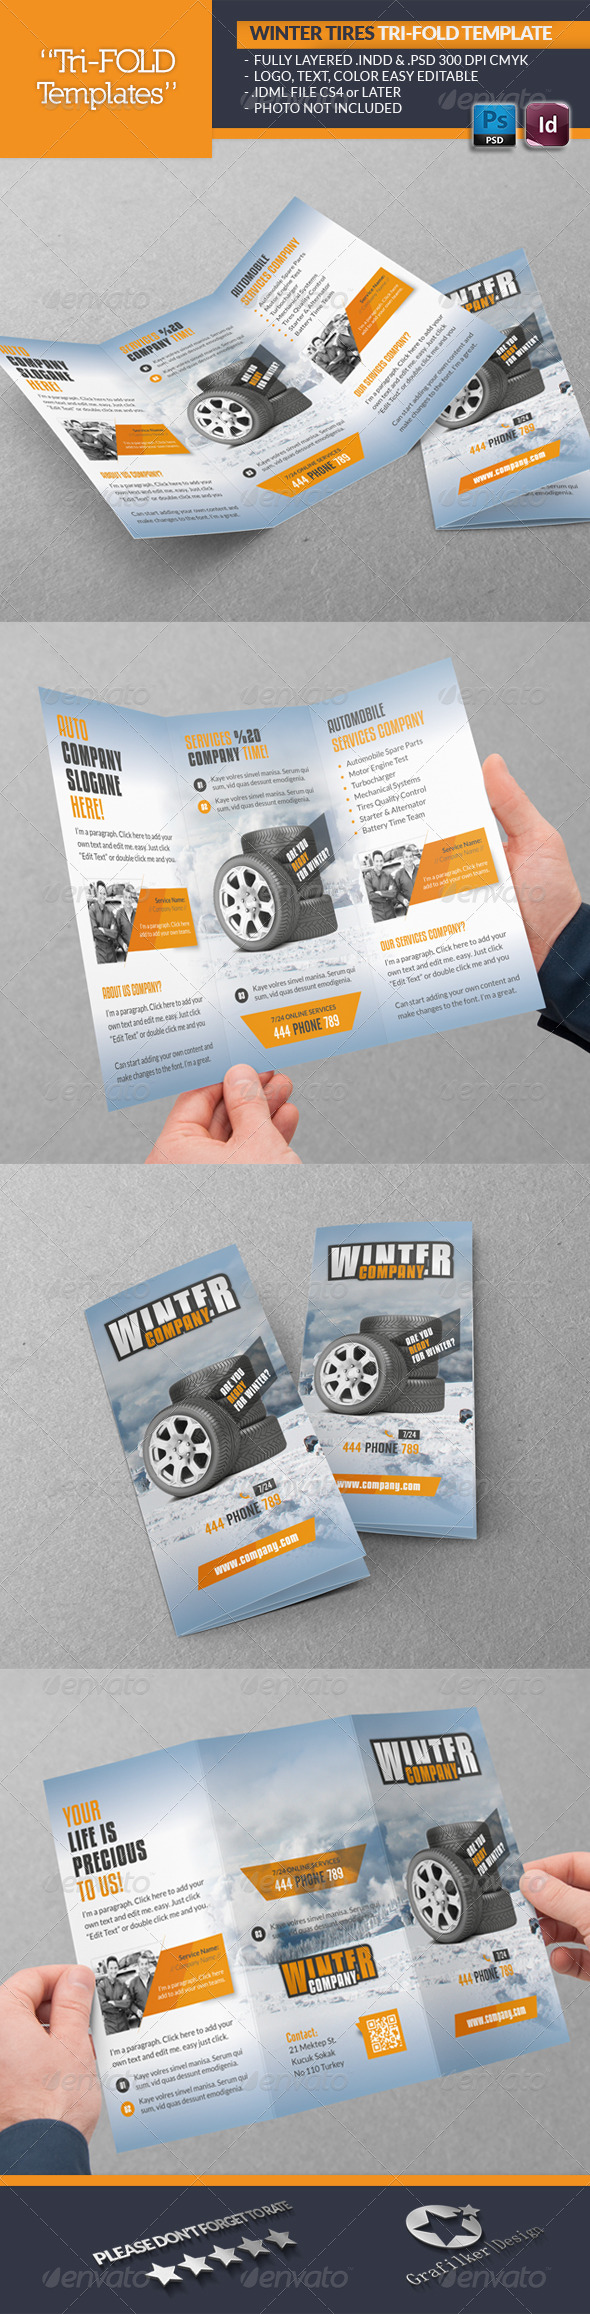 GraphicRiver Winter Tires Tri-Fold Template 6312283